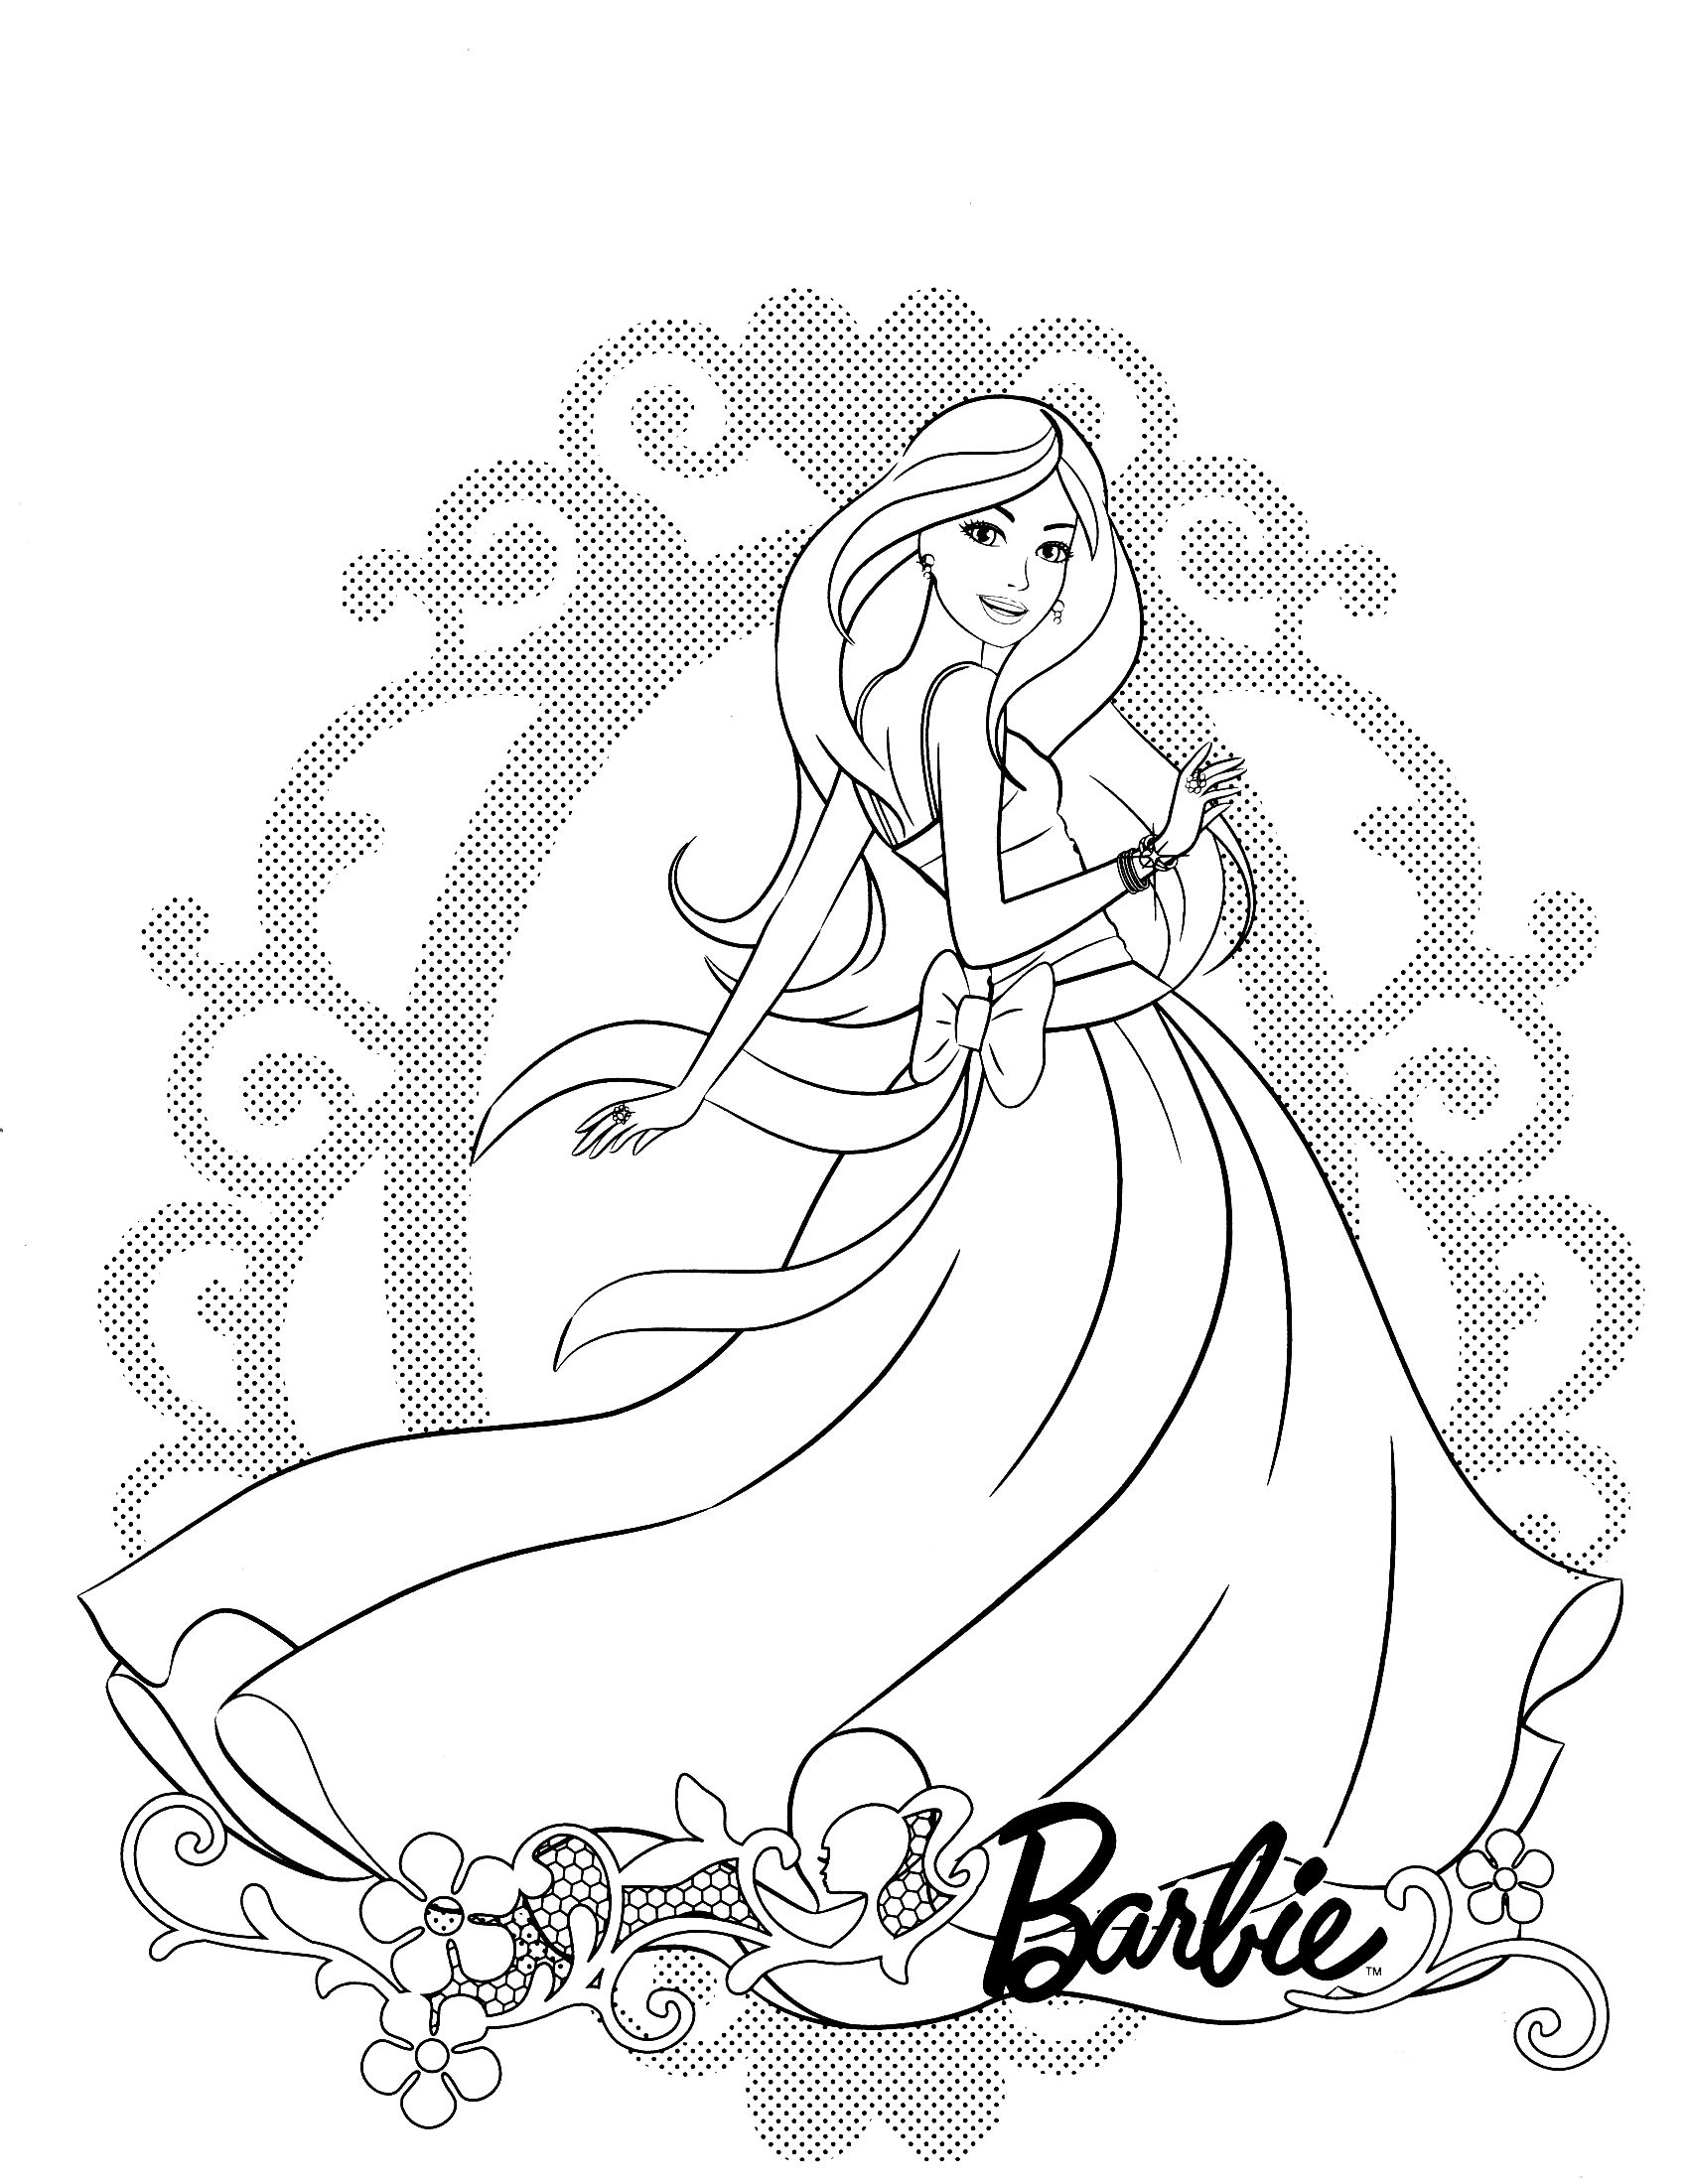 Barbie Dream House Coloring Pages Coloring Pages Wallpaper Barbie Coloring Pages Cartoon Coloring Pages Barbie Coloring